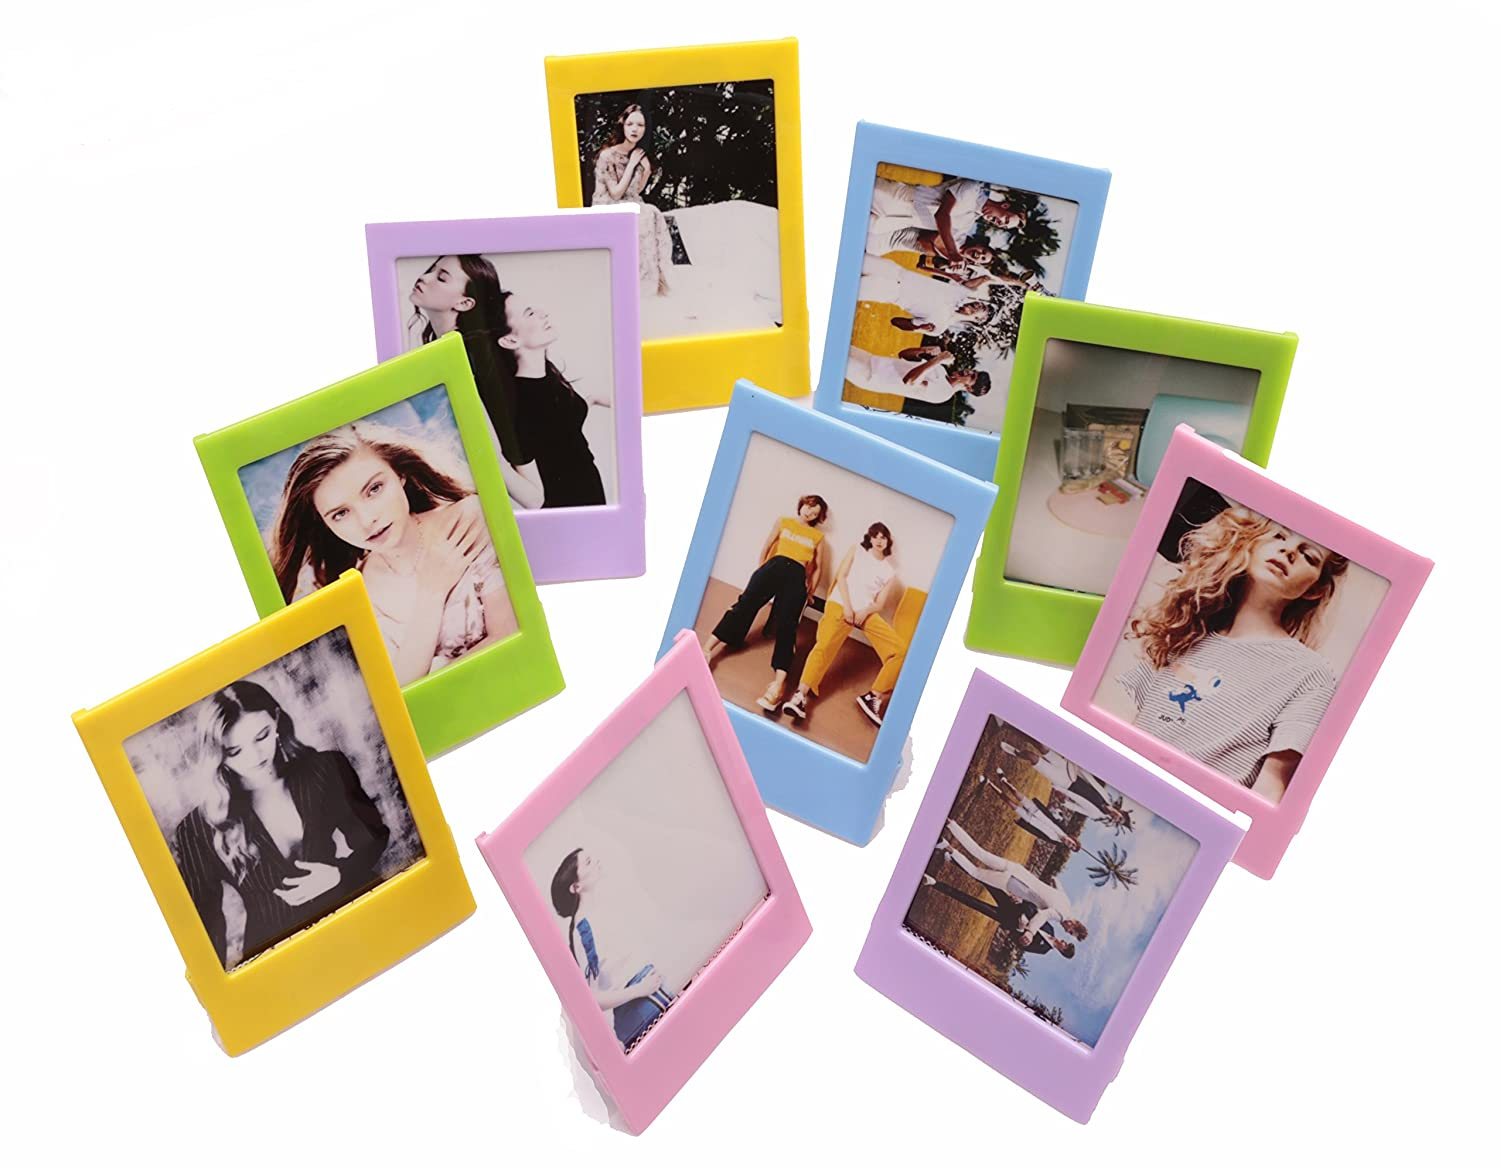 Fujifilm Instax Mini Ten Pack Instant Film Photo Frames Set,Hellohelio 10 Colorful 3 Inch borders,Set of 10